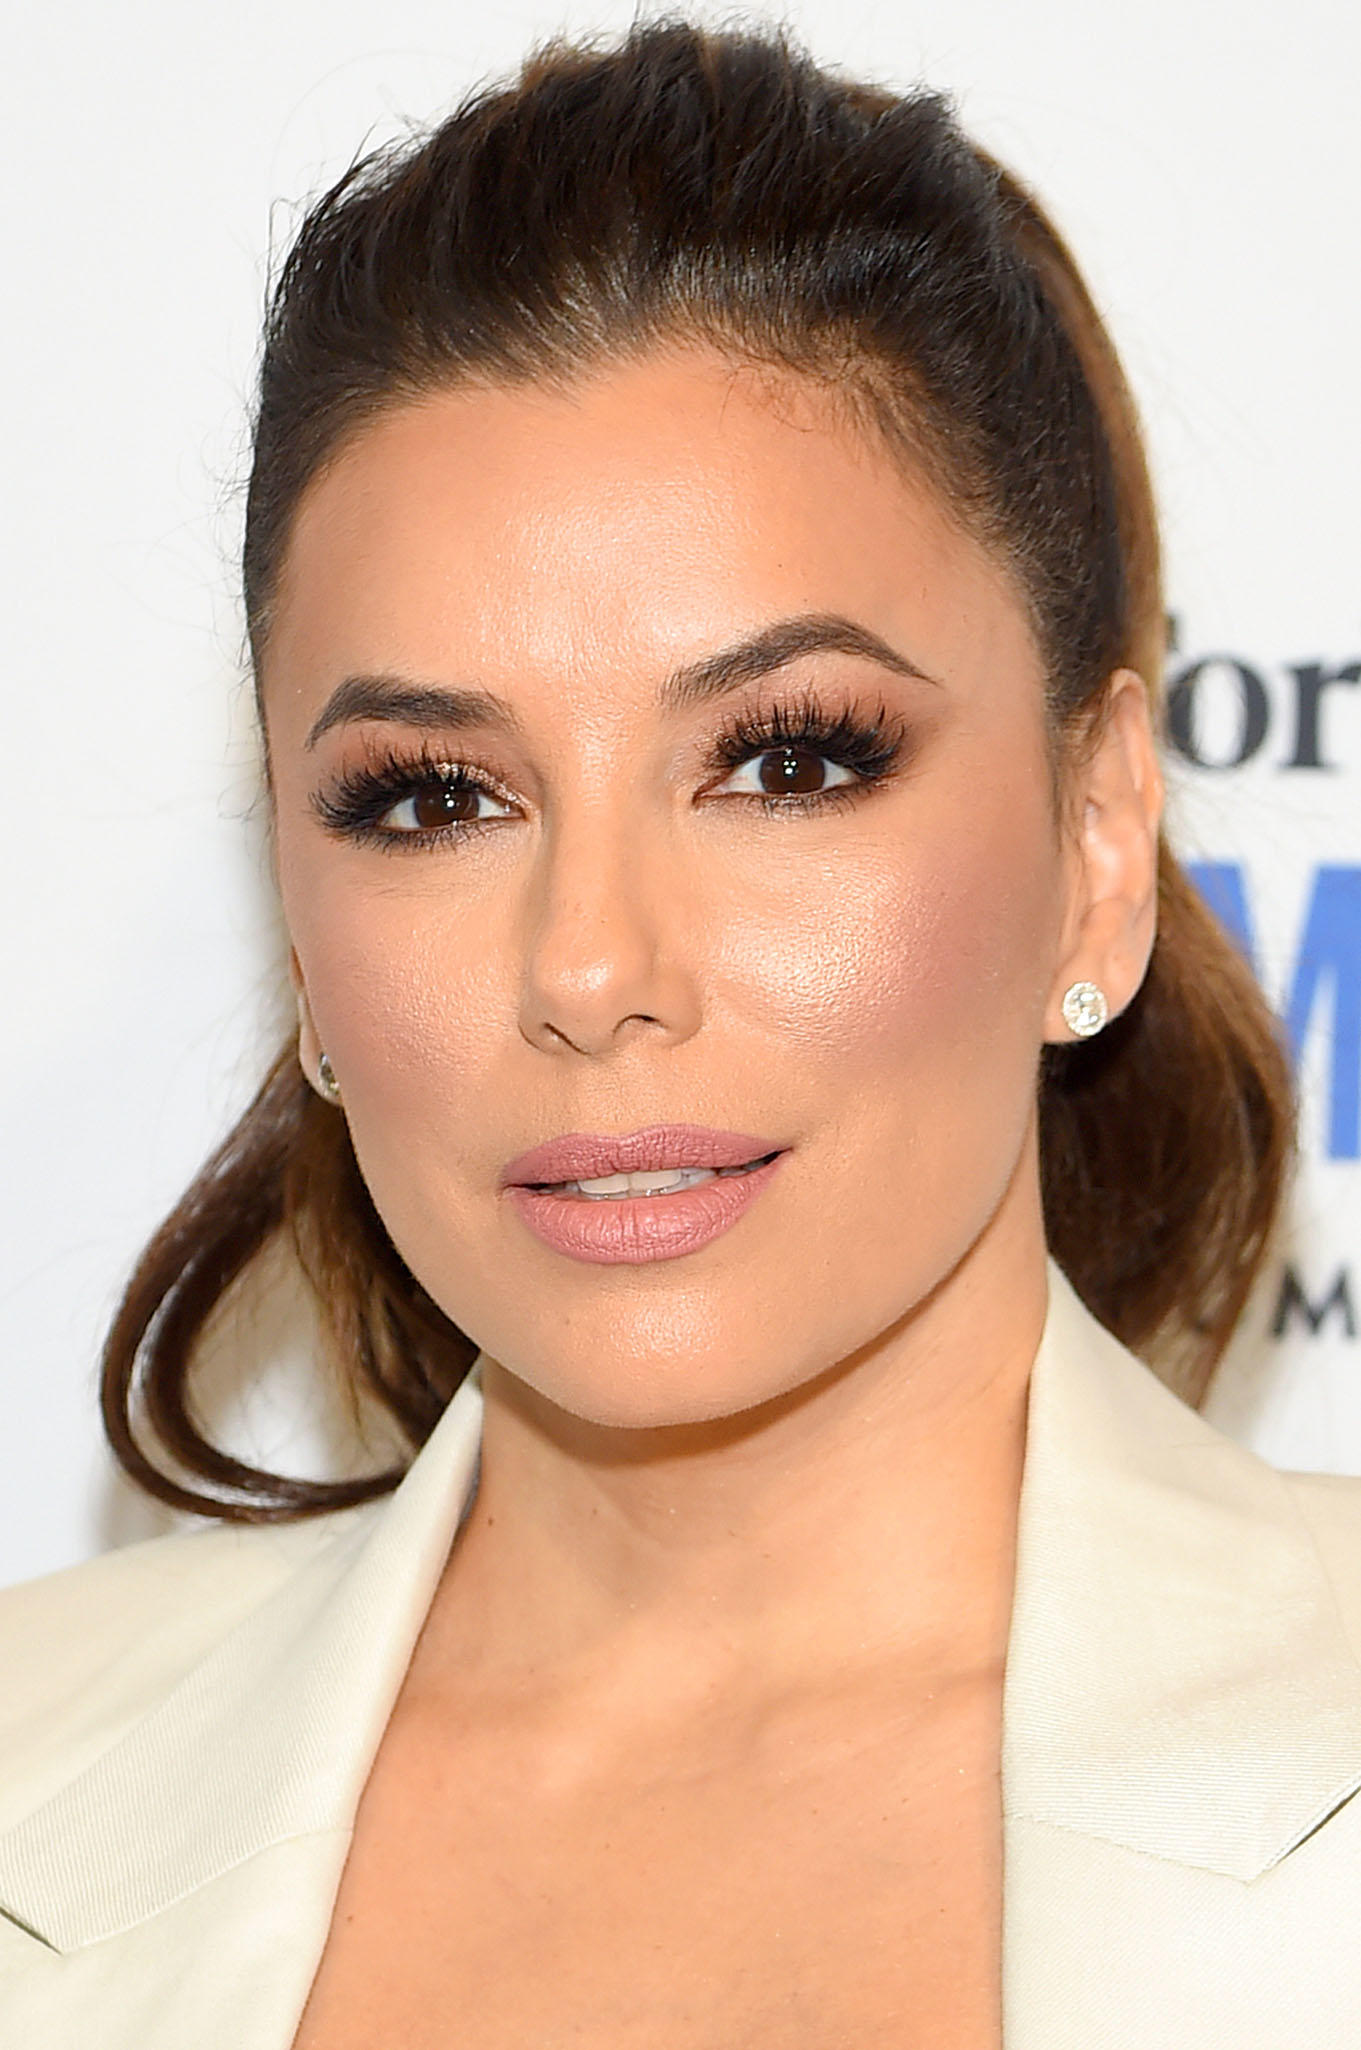 Eva Longoria at the 2019 Forbes Women's Summit in New York City.